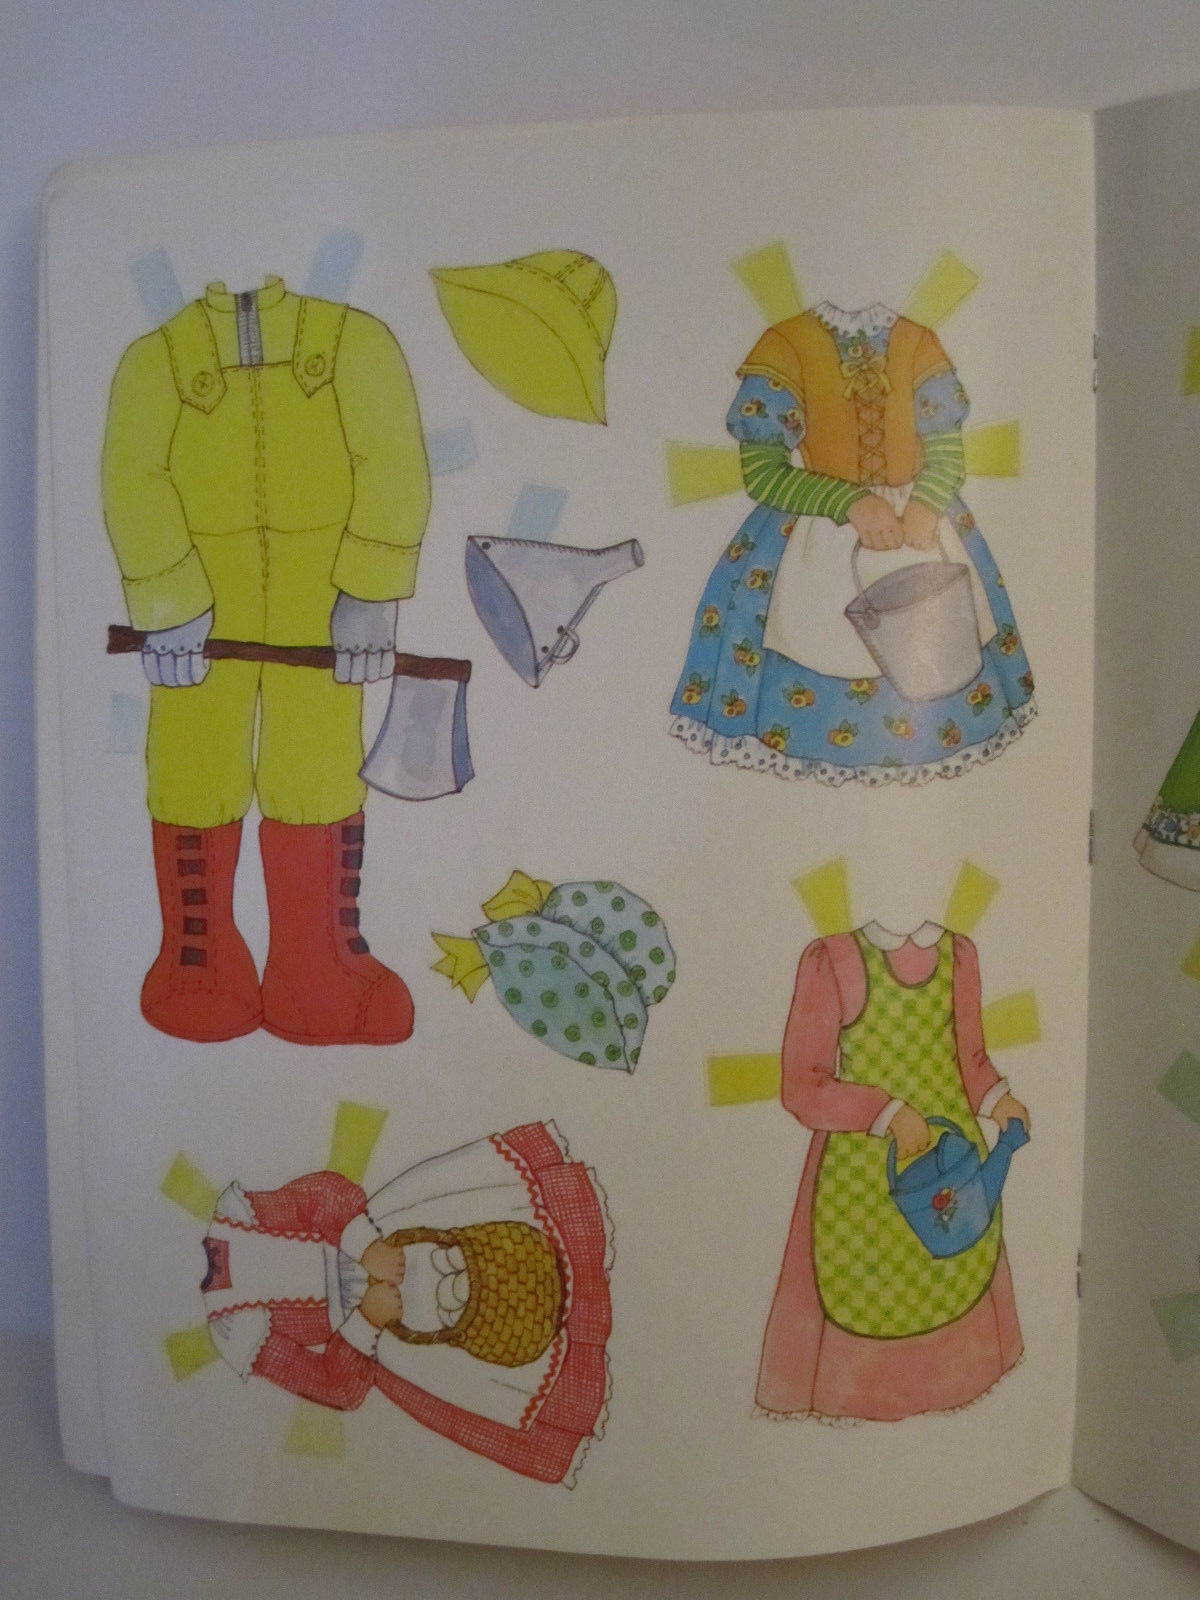 Whitman Wizard of OZ PaperDolls Vintage 1976 Paper Doll #1987 image 8